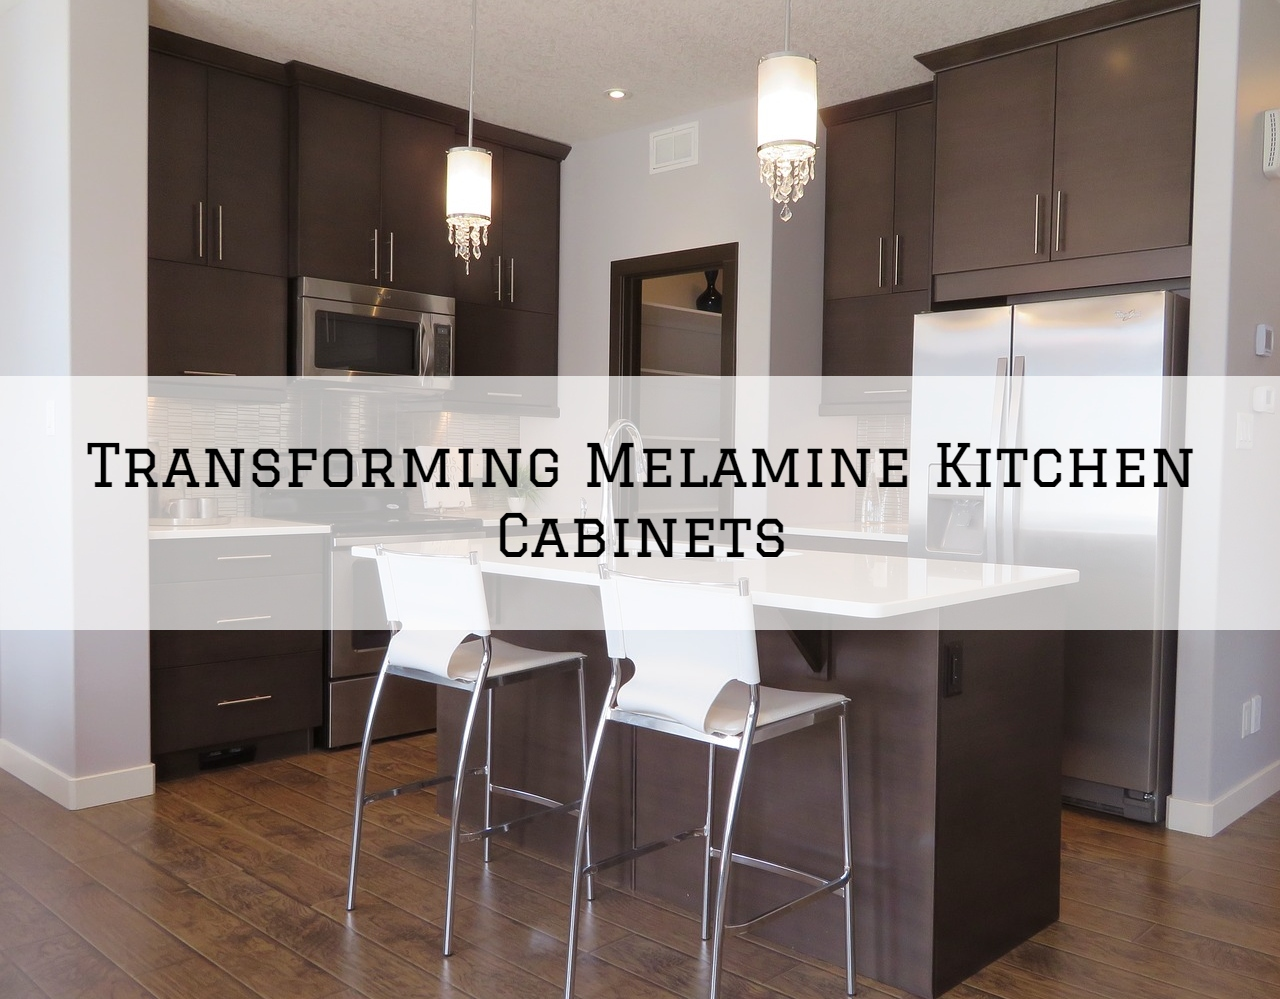 Transforming Melamine Kitchen Cabinets In Richmond Mi Eason Painting